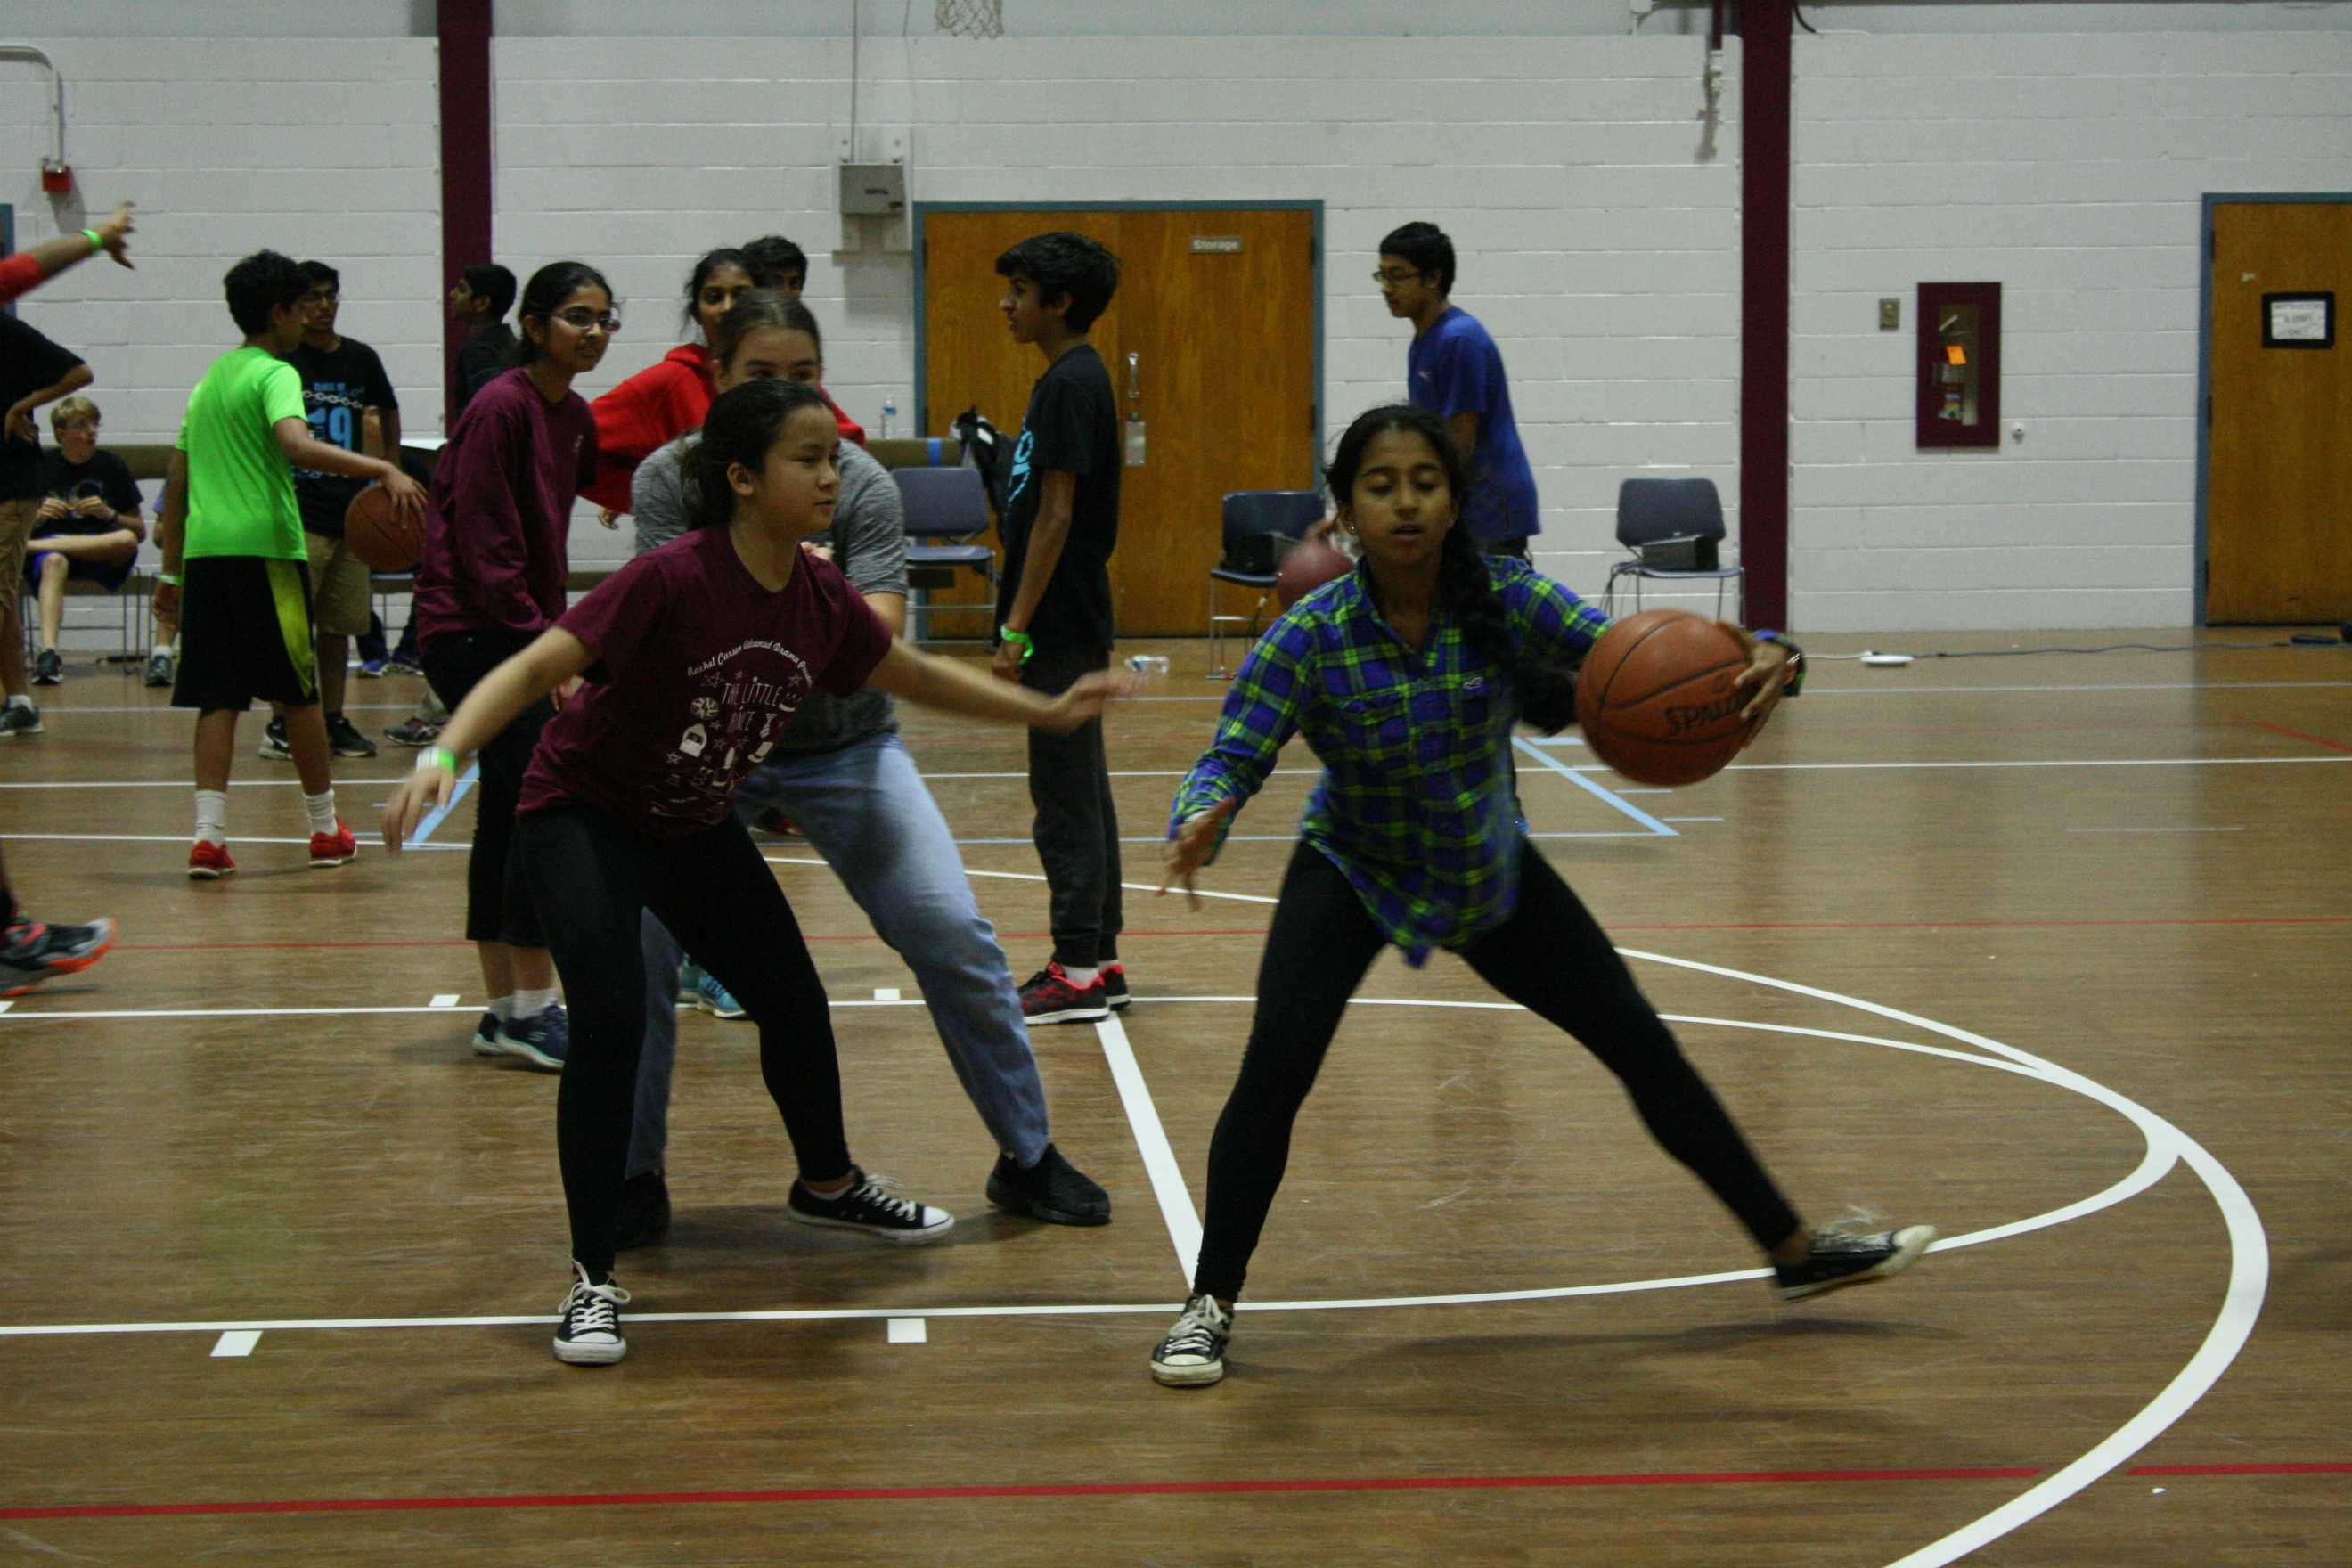 Cassidy+Trinh+and+Shambhavi+Ramaswamy+play+basketball+before+the+talent+show+during+open+gym.+Multiple+basketball+games+occurred+in+the+gym+before+the+talent+show.